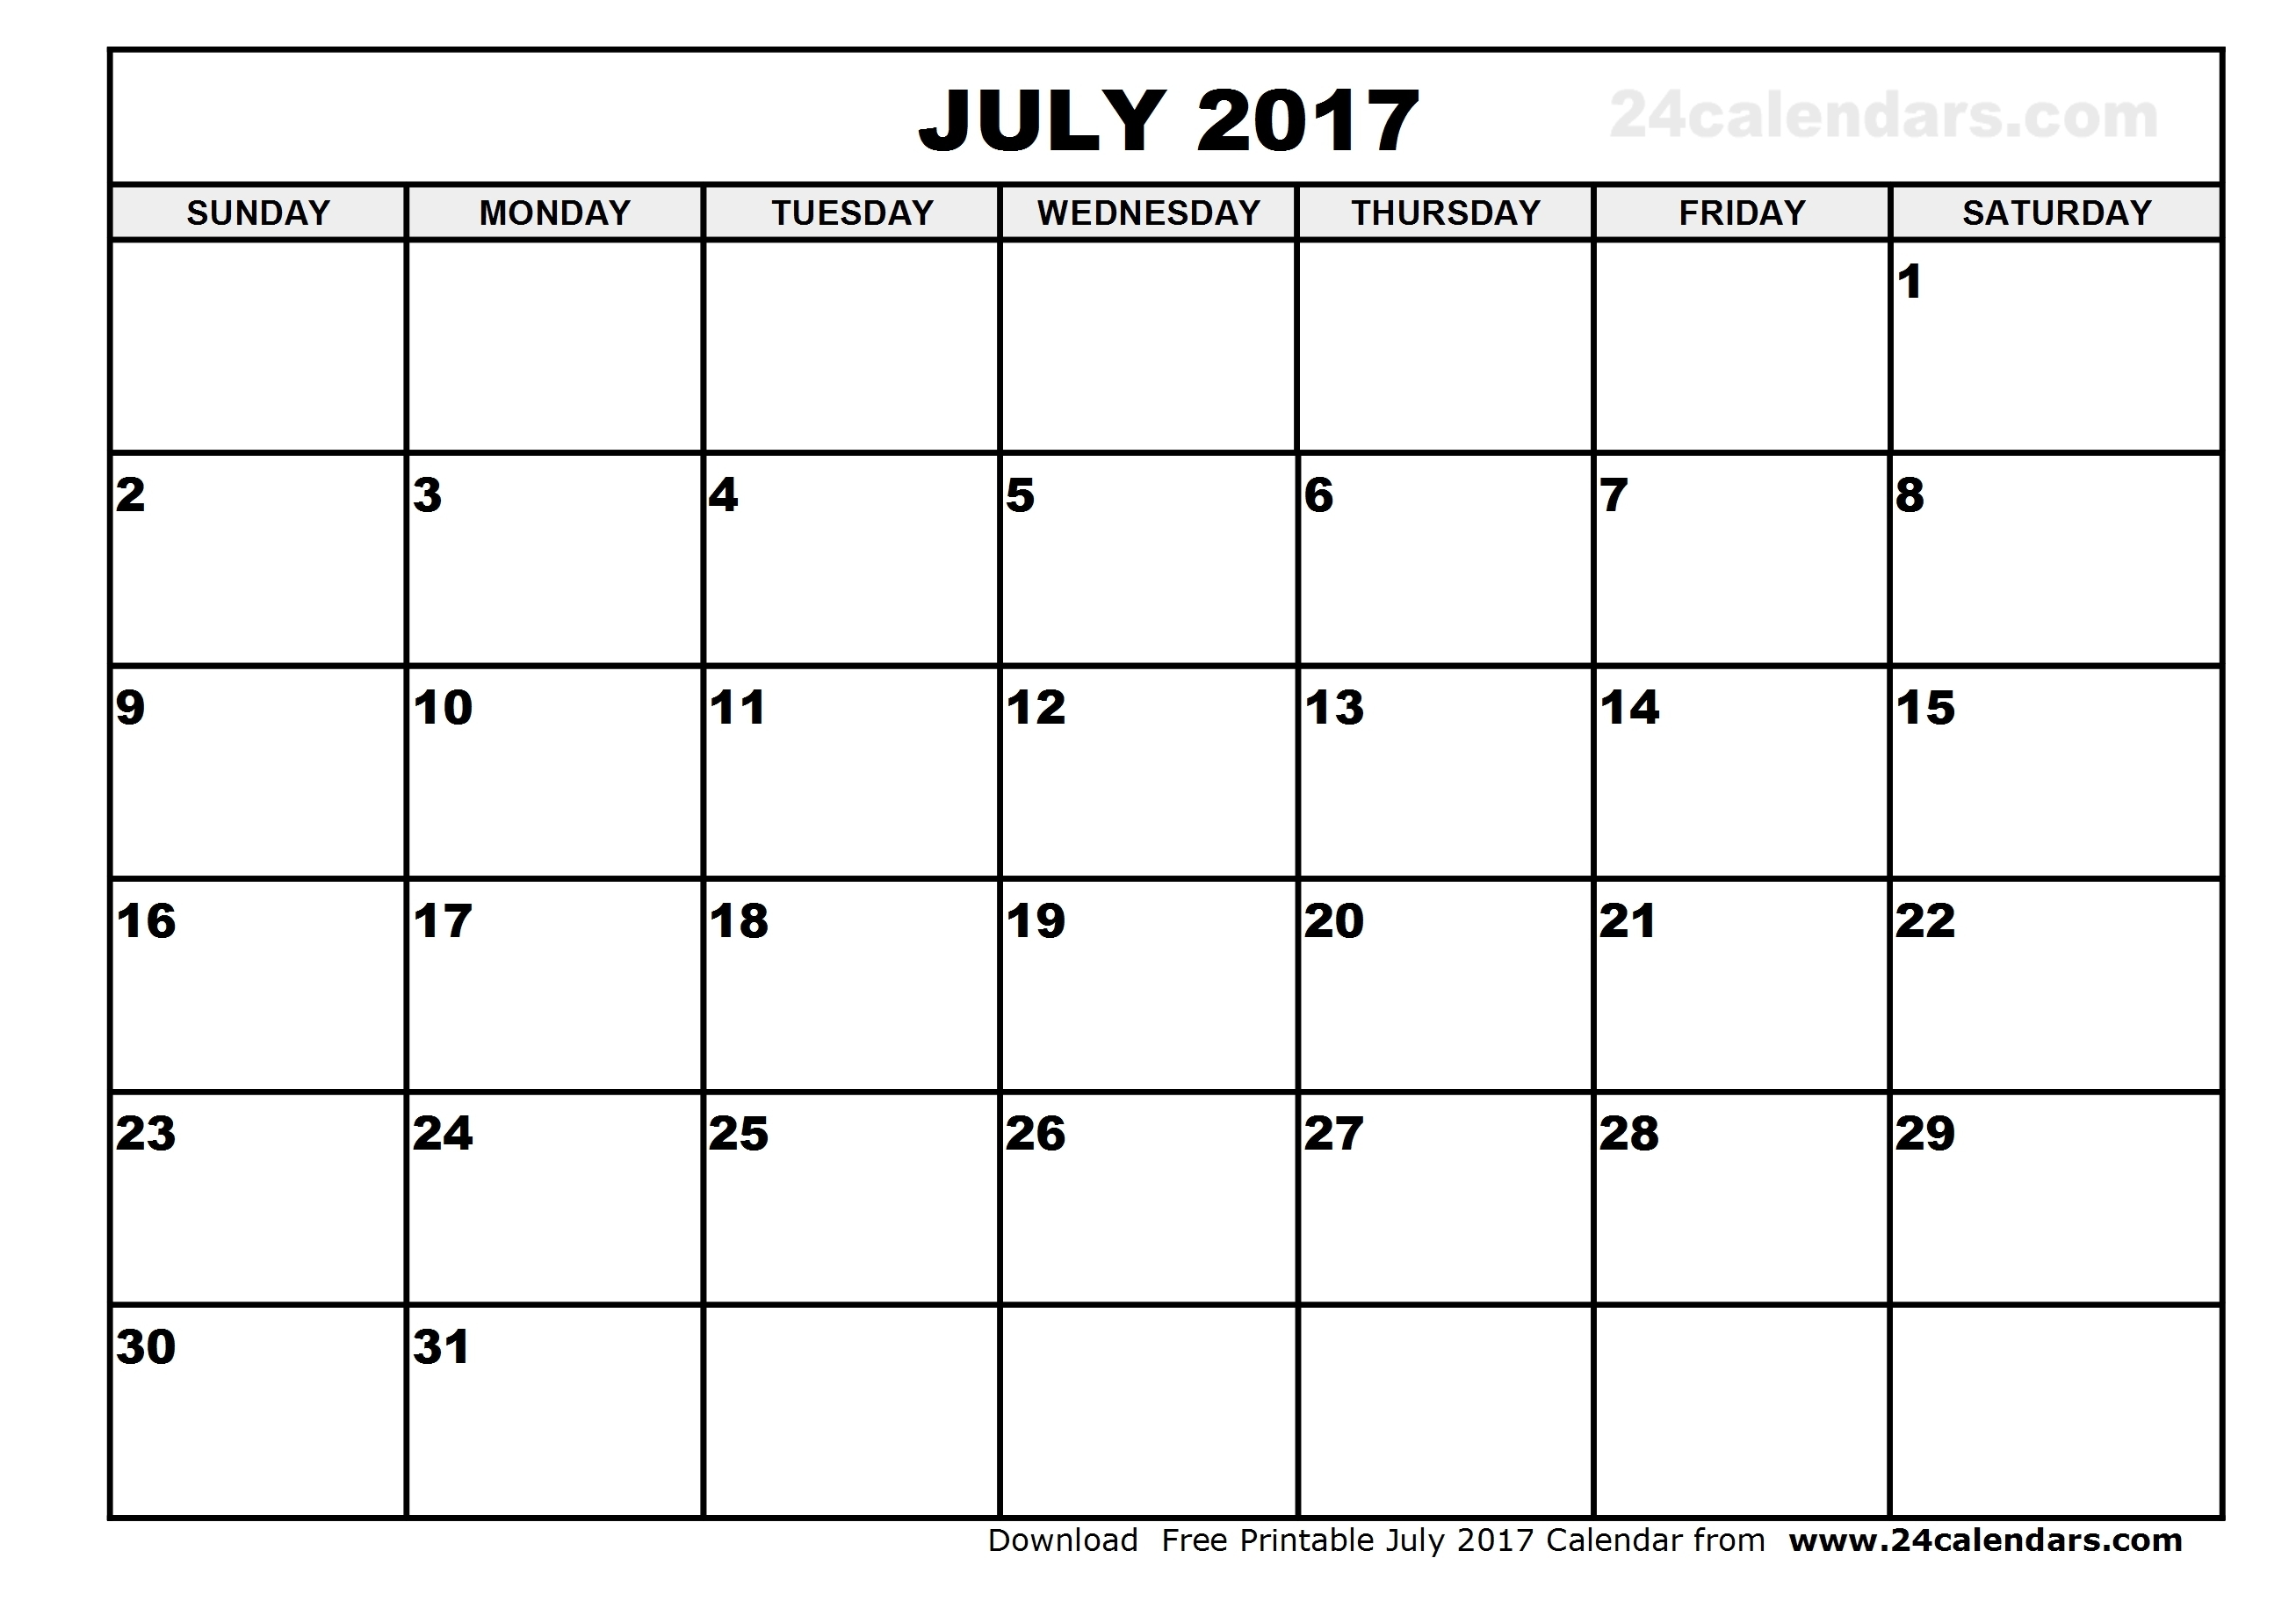 July 2017 Calendar Printable - Printable Calendar & Birthday Cards throughout Printable July Through August On One Page Calendars